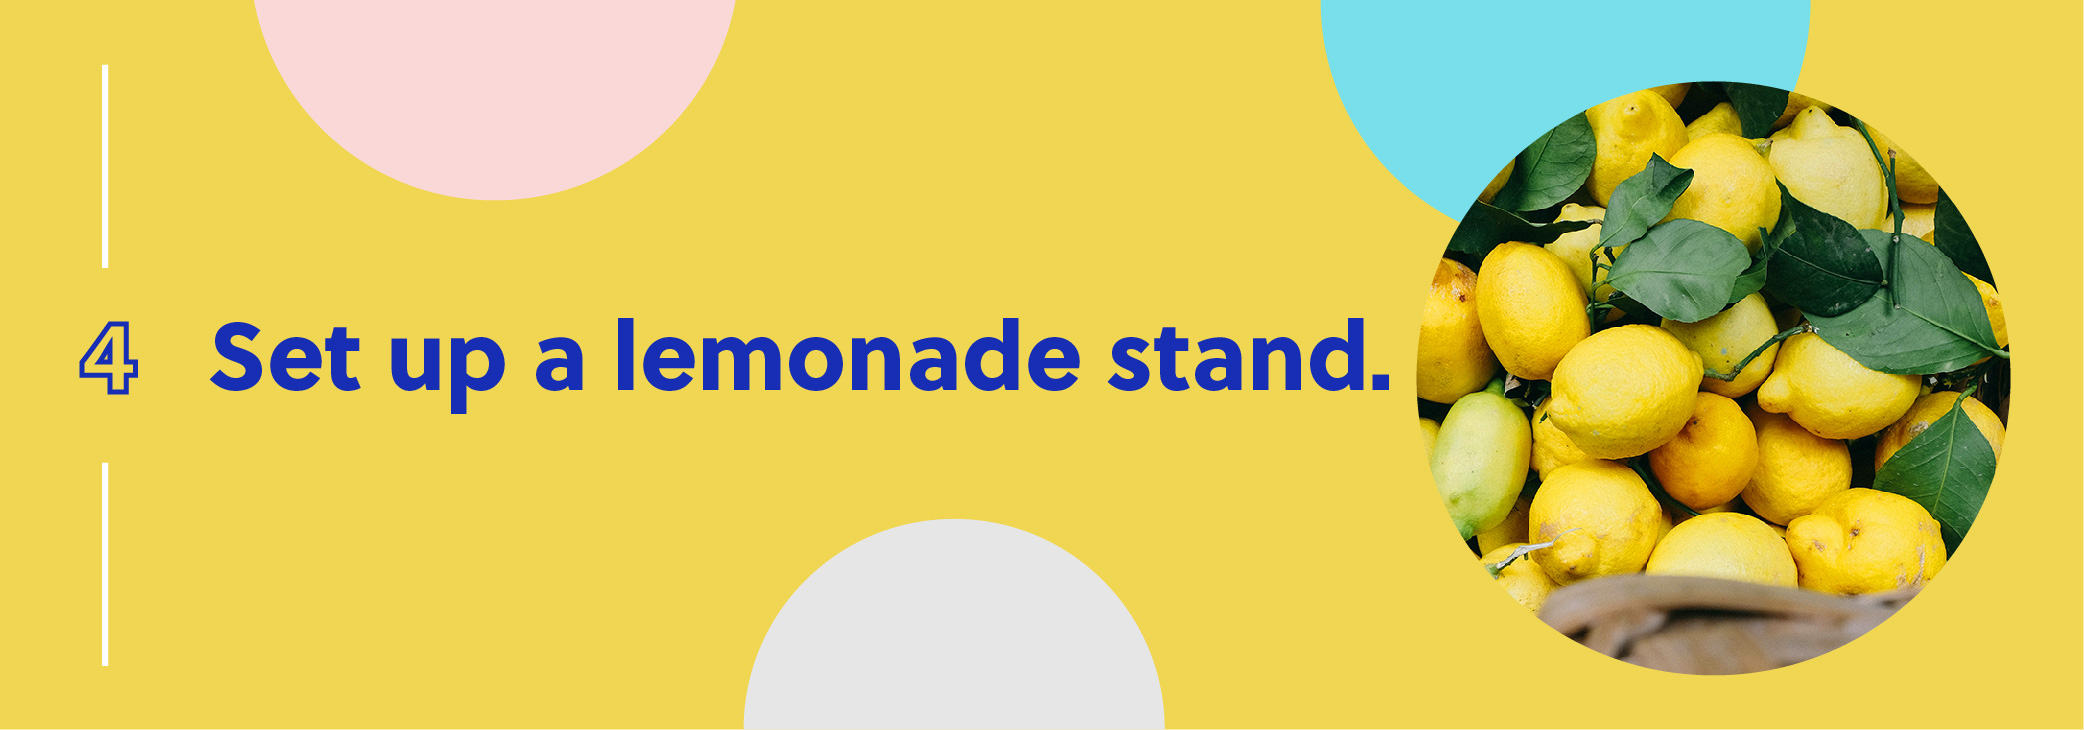 Set up a lemonade stand.